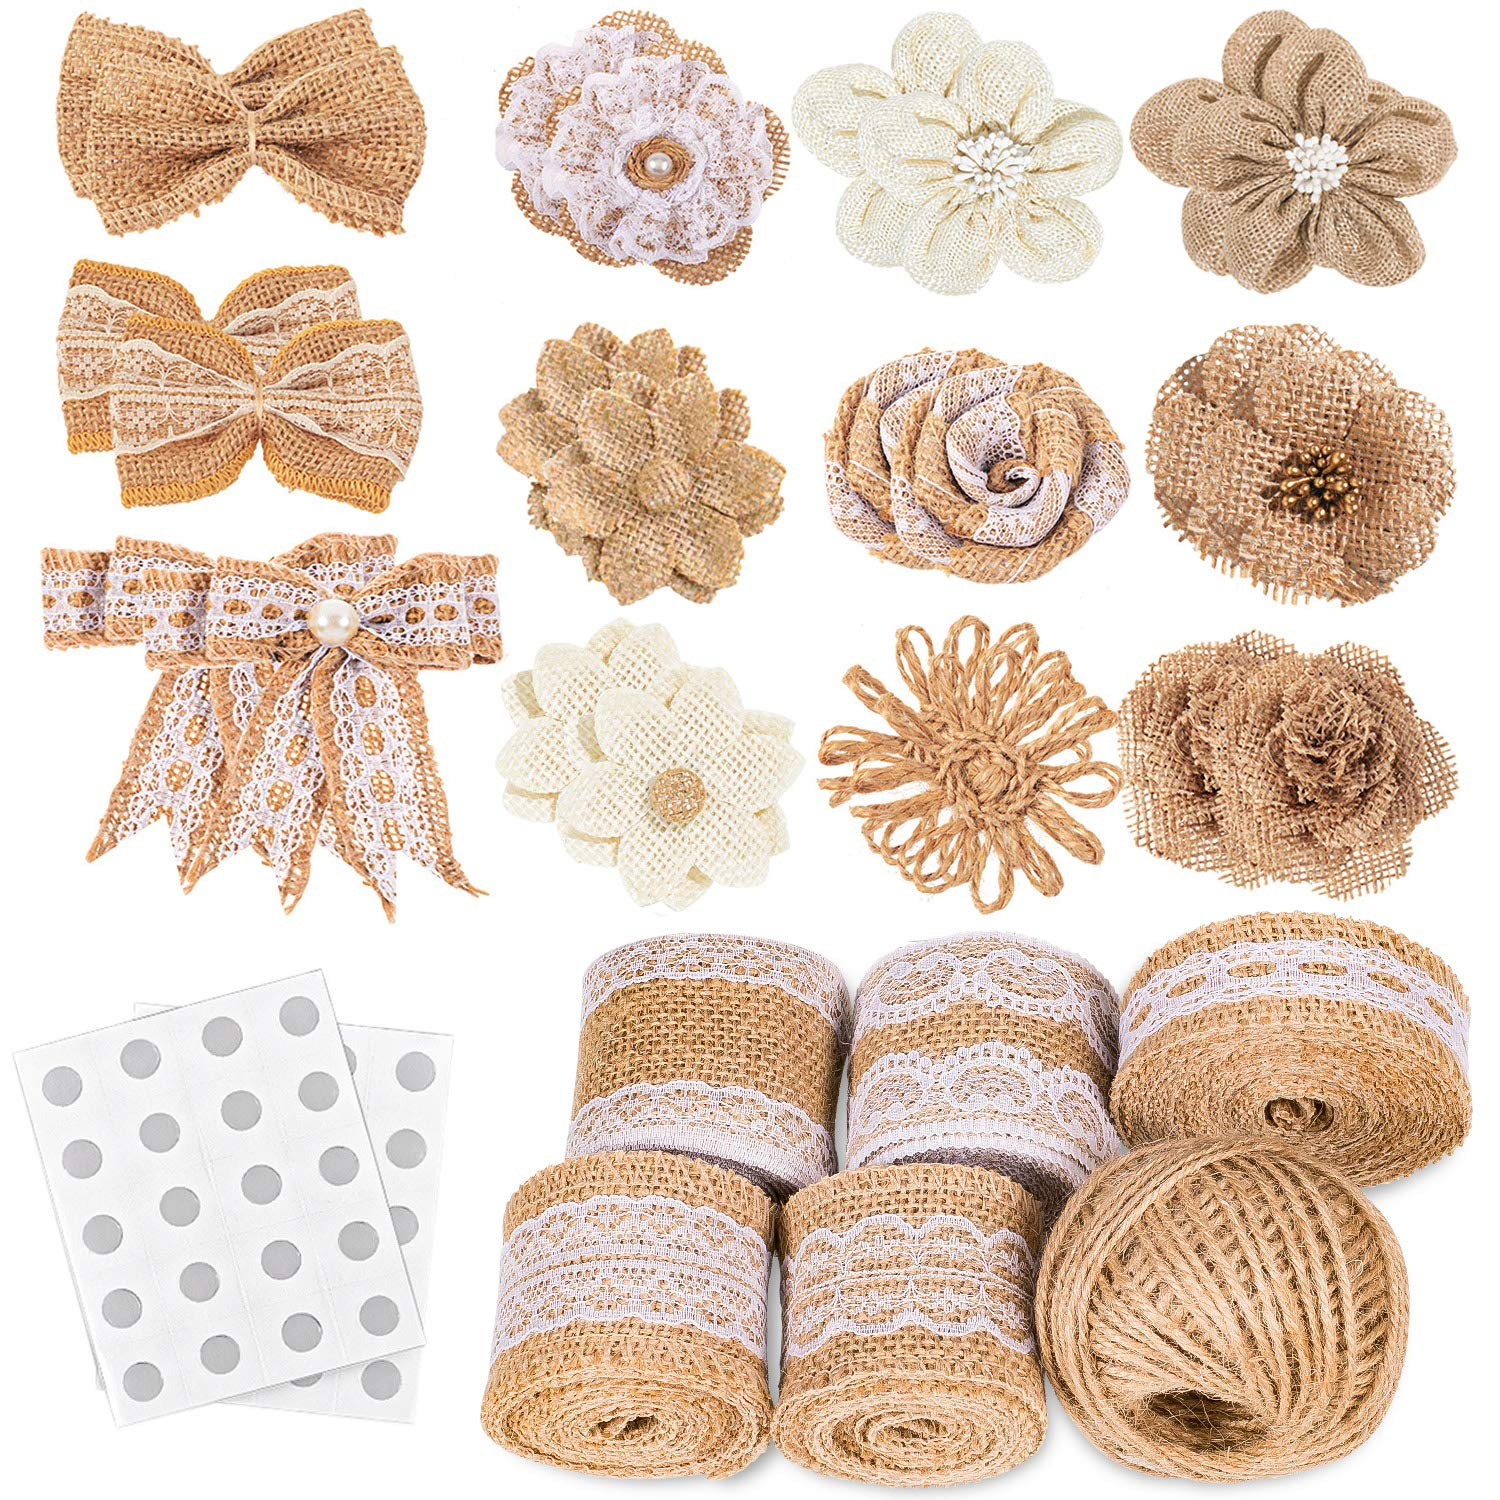 Whaline 30PCS Burlap Flowers Set, Include 5 Lace Burlap Ribbon Rolls, 24 Handmade Burlap Flowers and Bowknots, 1 Twine Ribbon and Glue Dots for Wedding Party Decor Home Embellishment DIY Crafts by Whaline